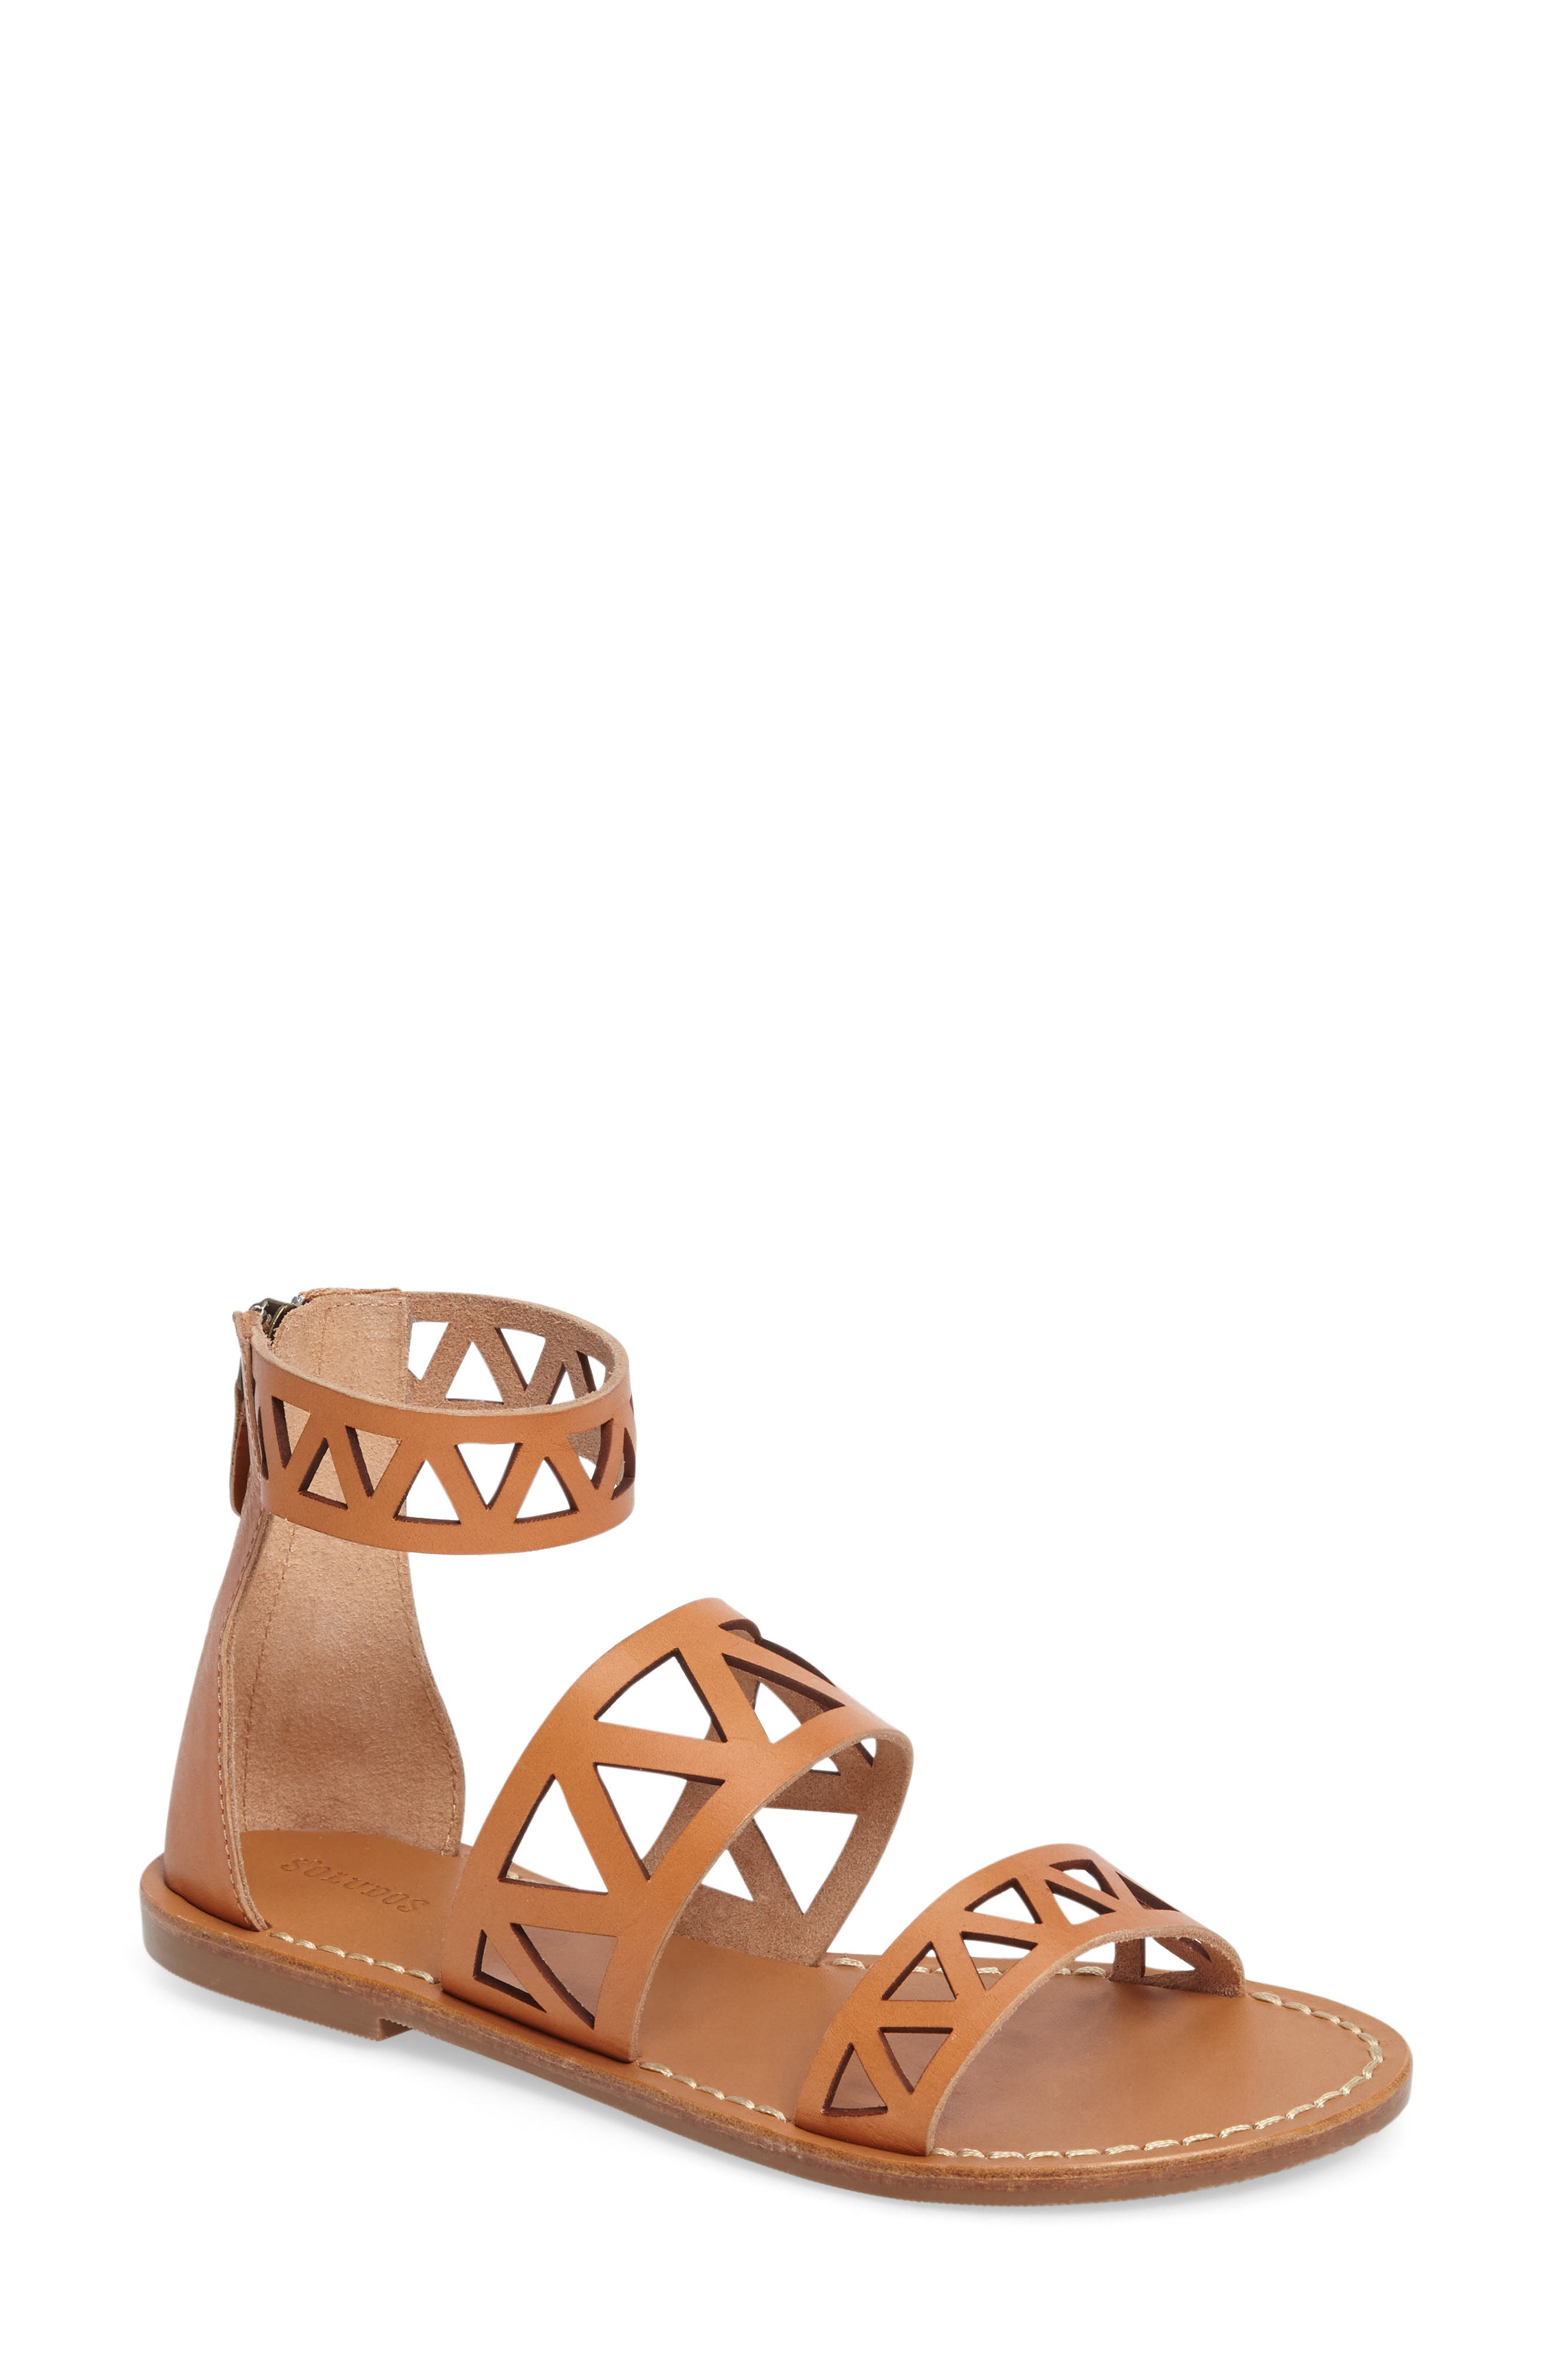 Ankle Cuff Sandal,                             Main thumbnail 1, color,                             200